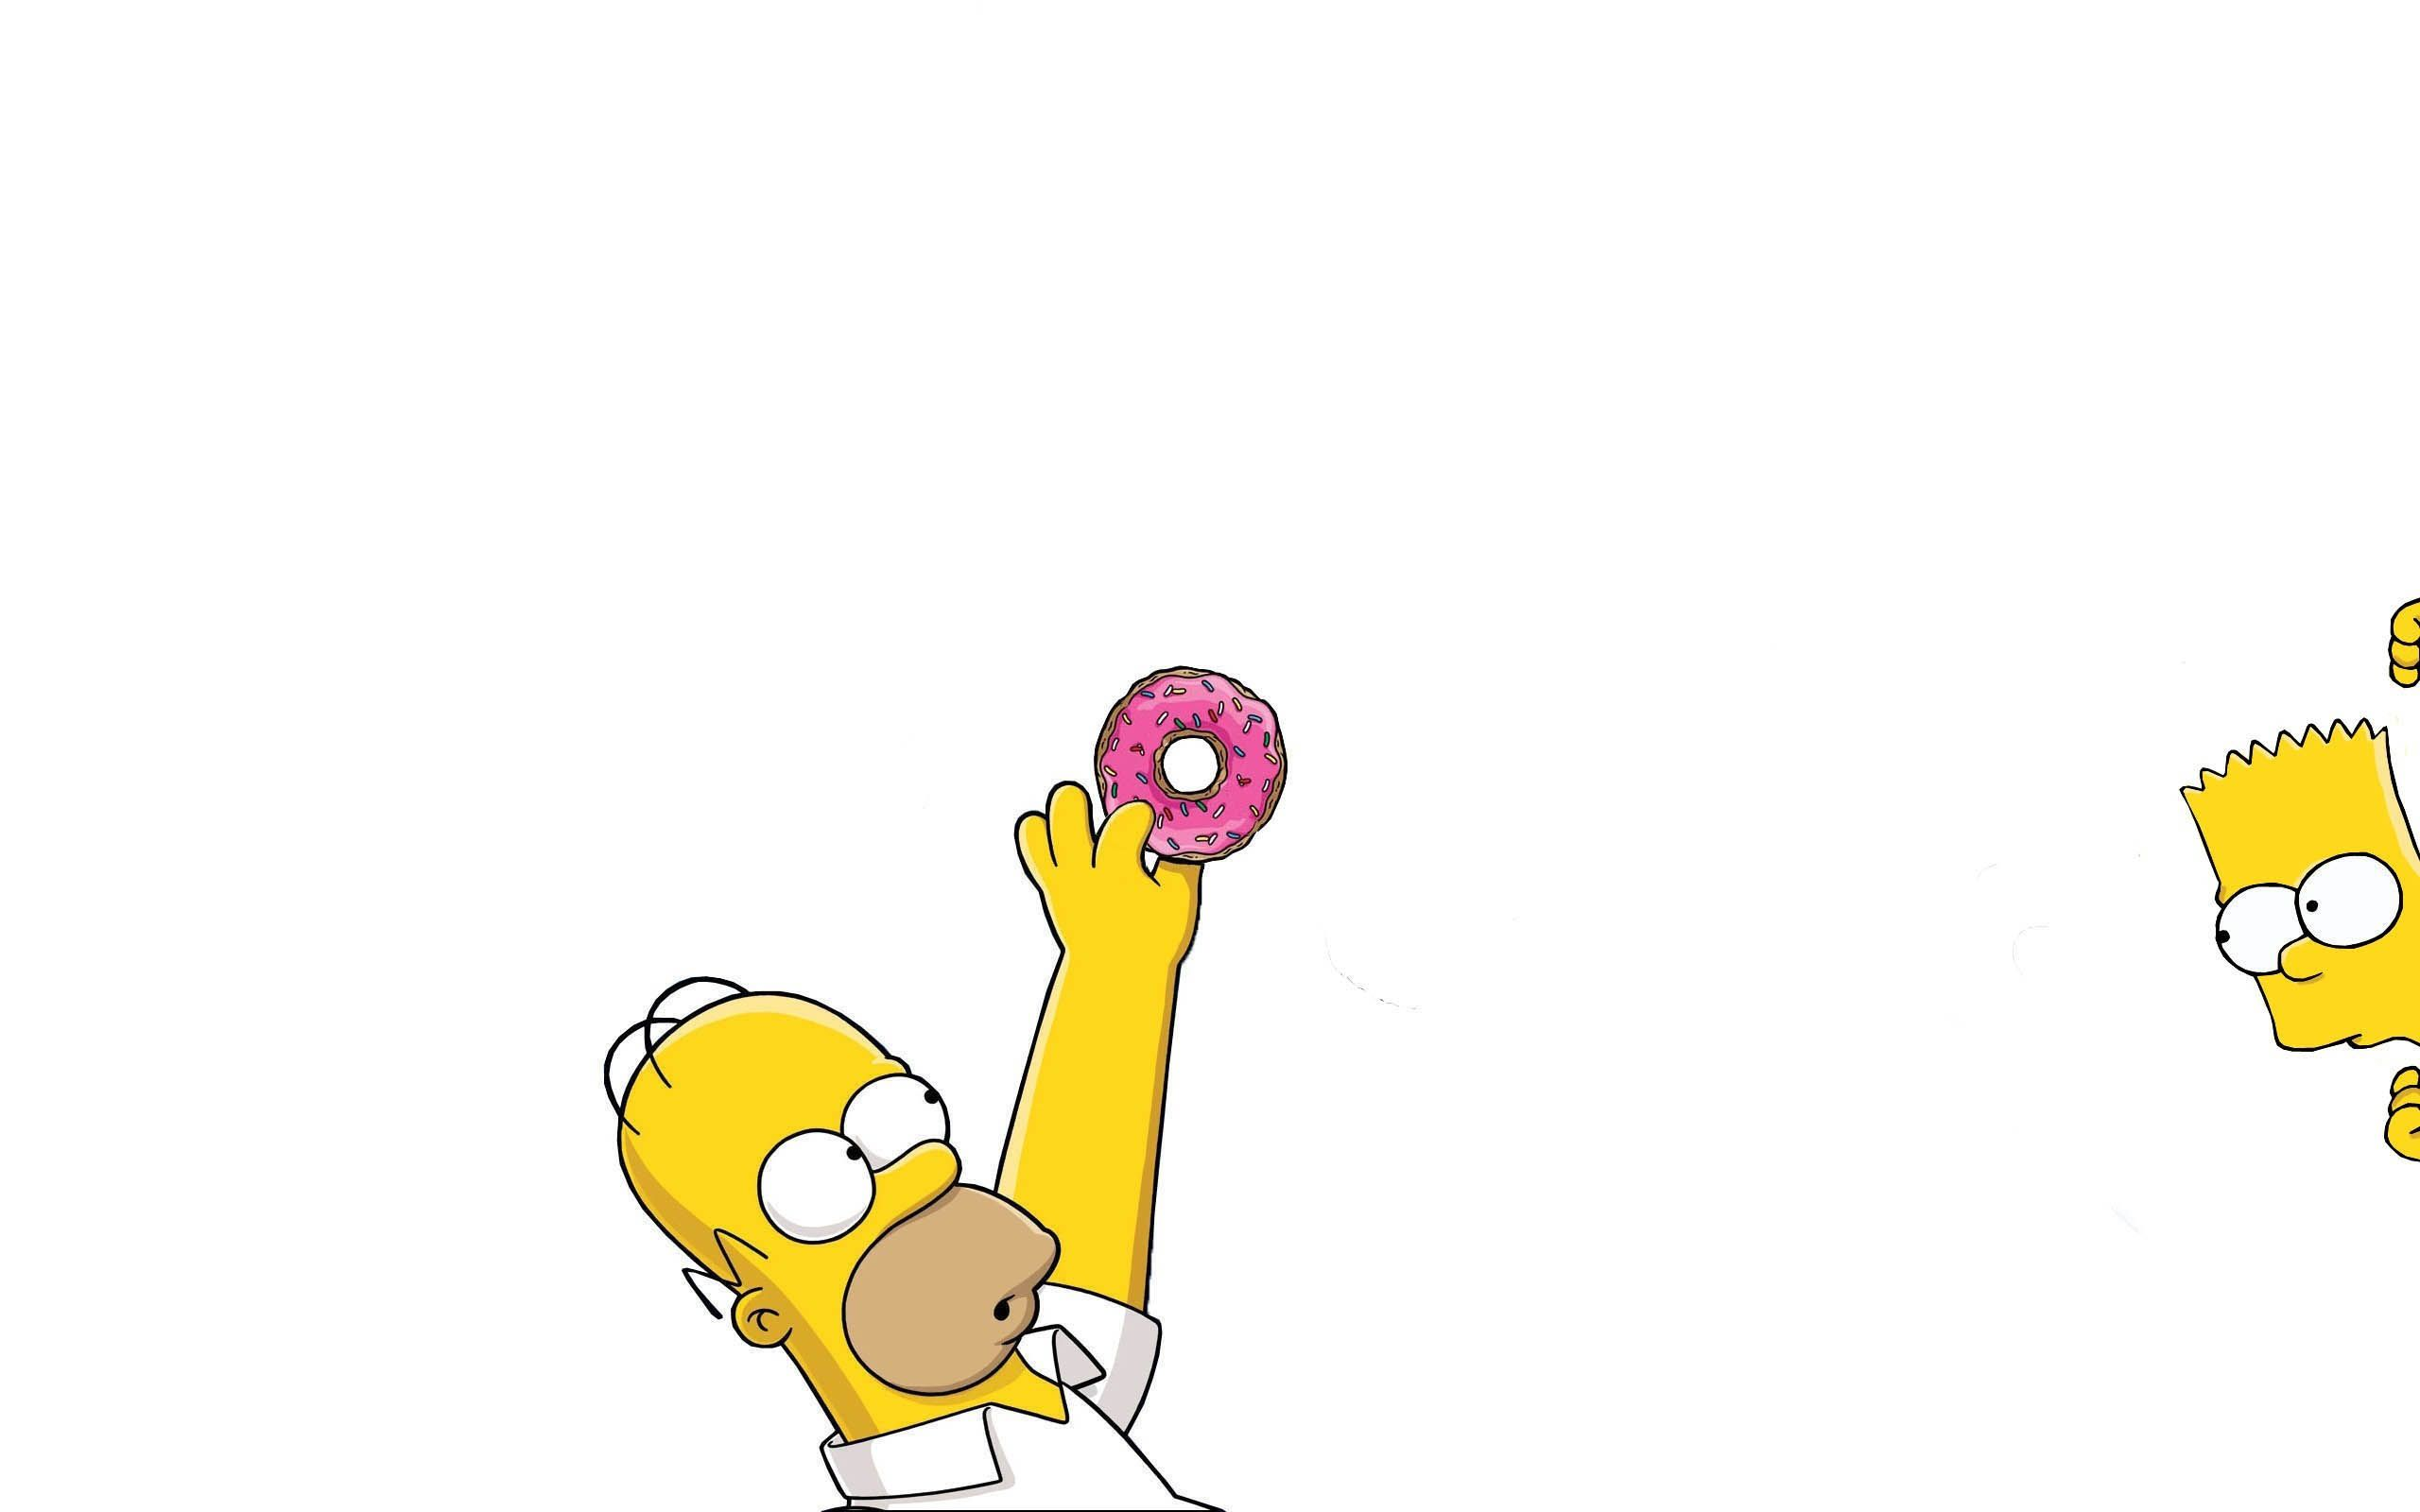 2560x1600 Simpson Wallpaper (28+ images) on Genchi.info